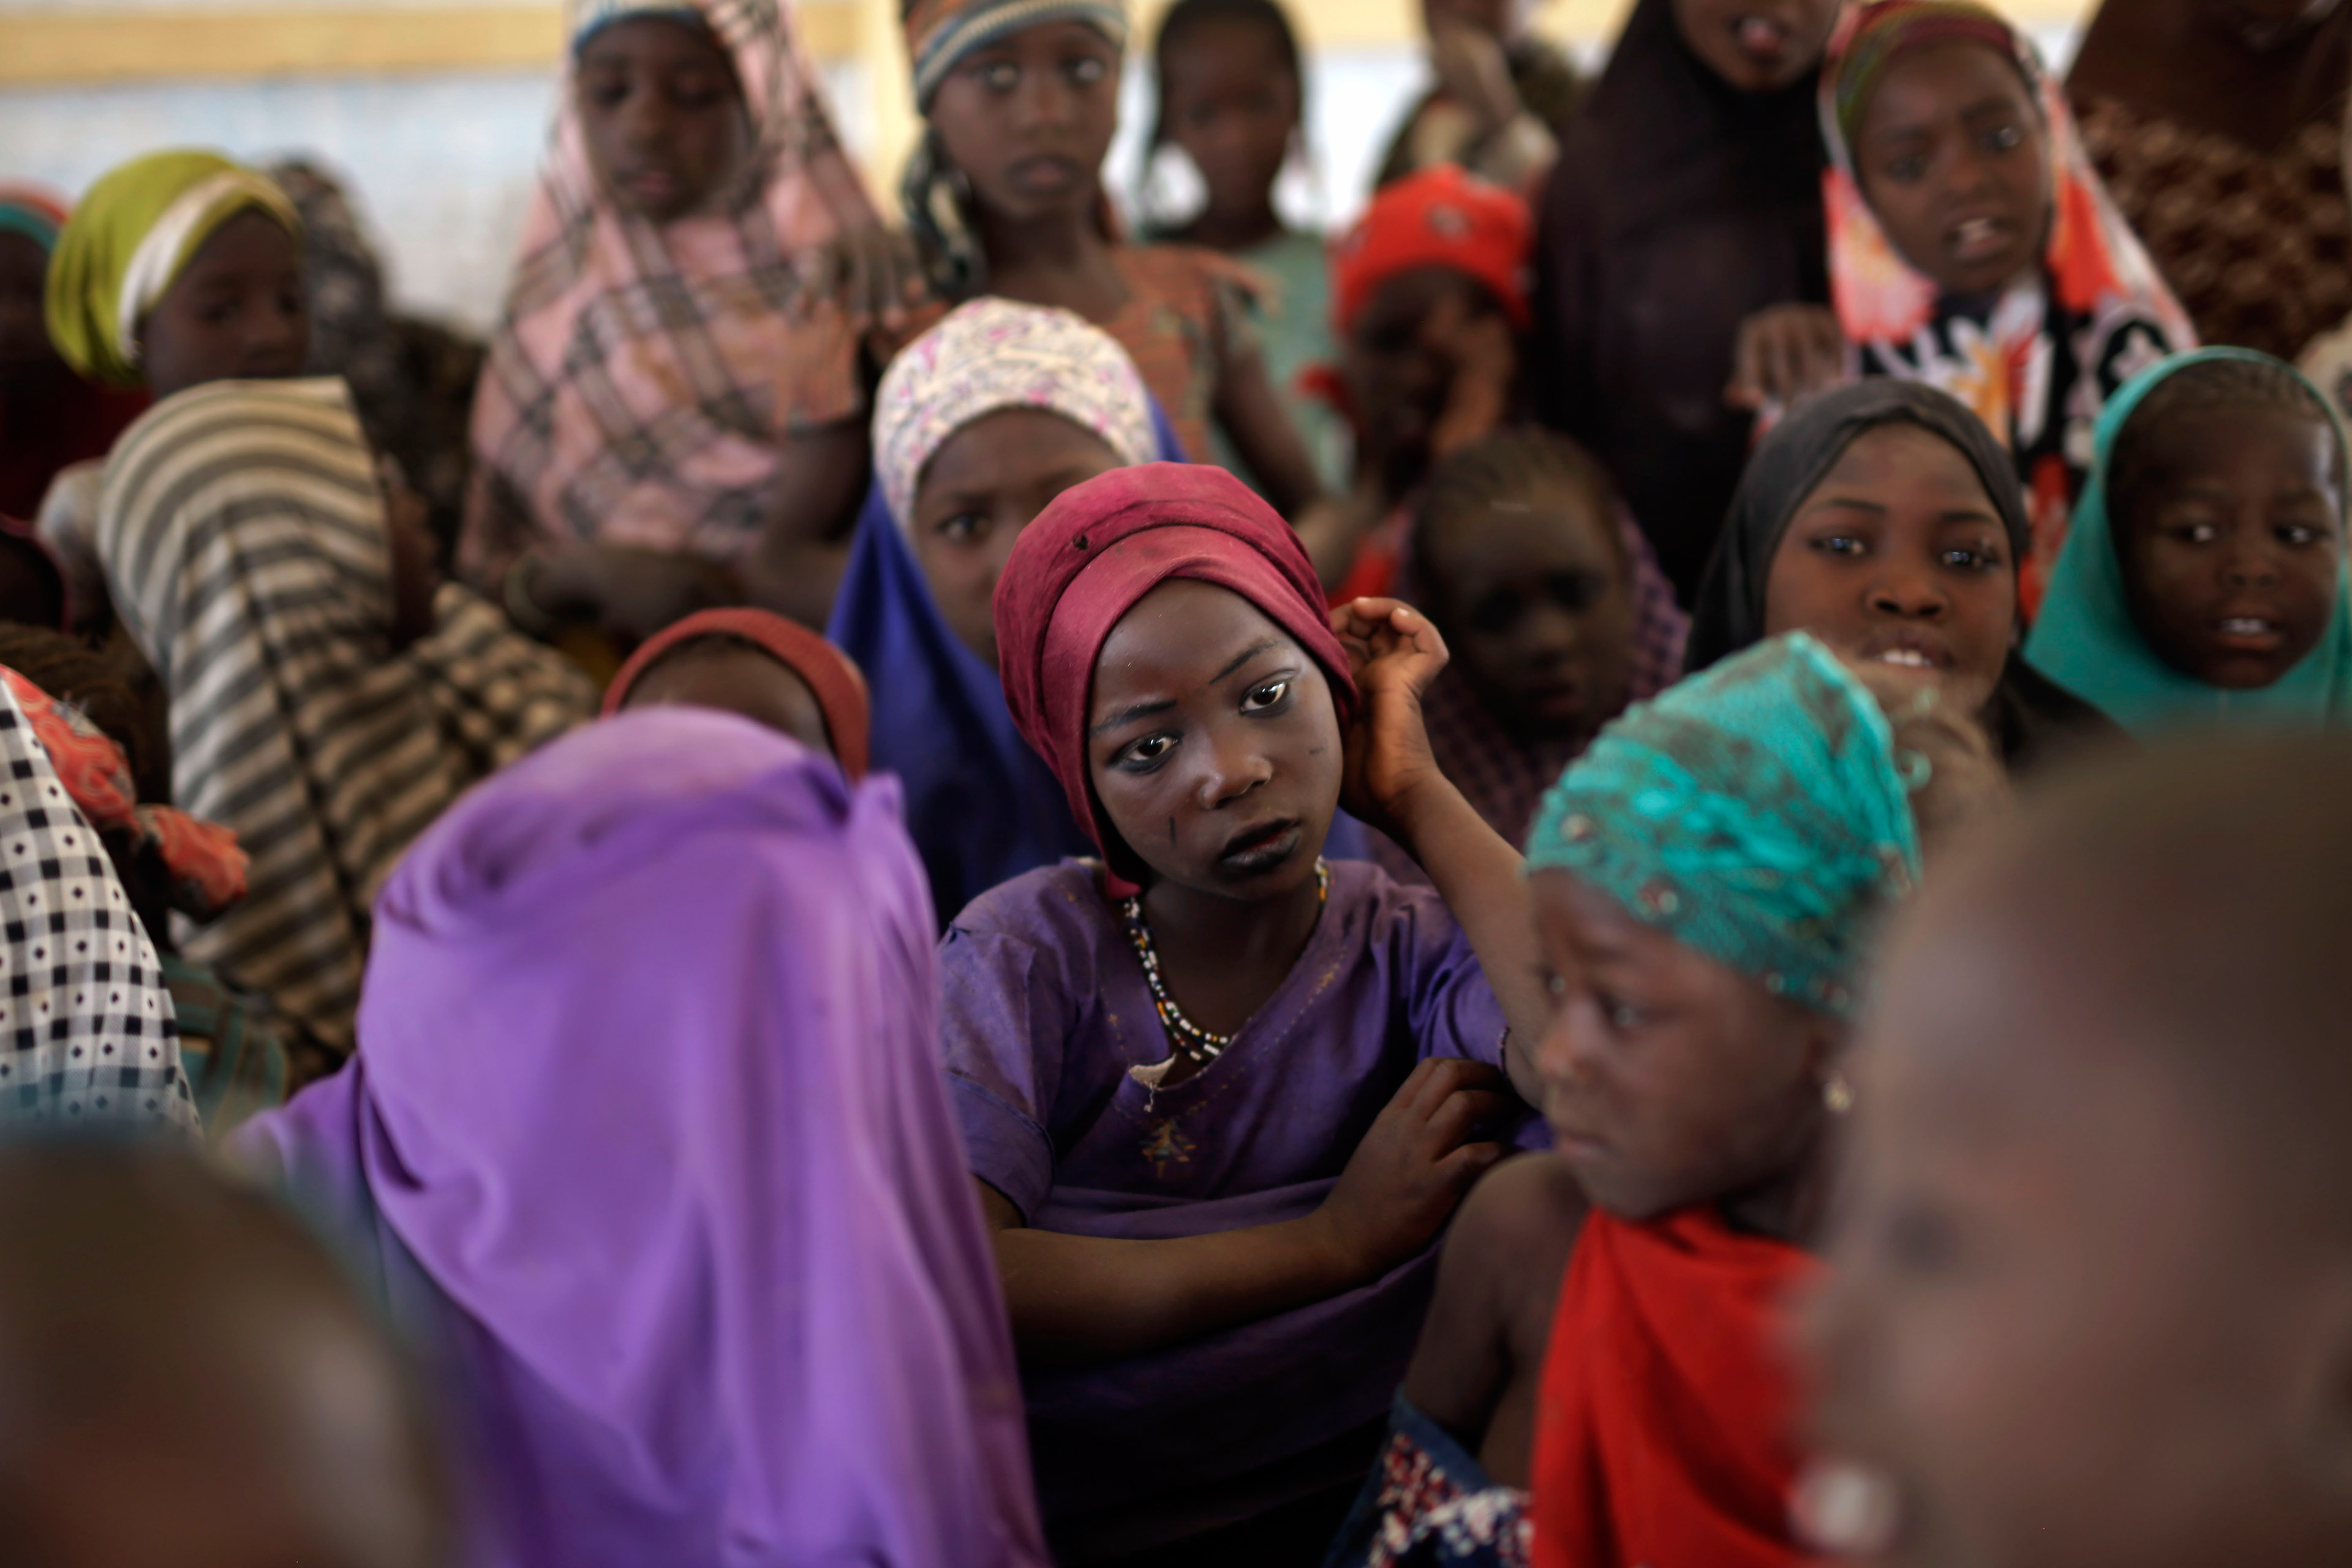 Nigerian girls who fled Boko Haram to Chad gather in a school set up by UNICEF at the Baga Solo refugee camp in Chad on March 4, 2015.